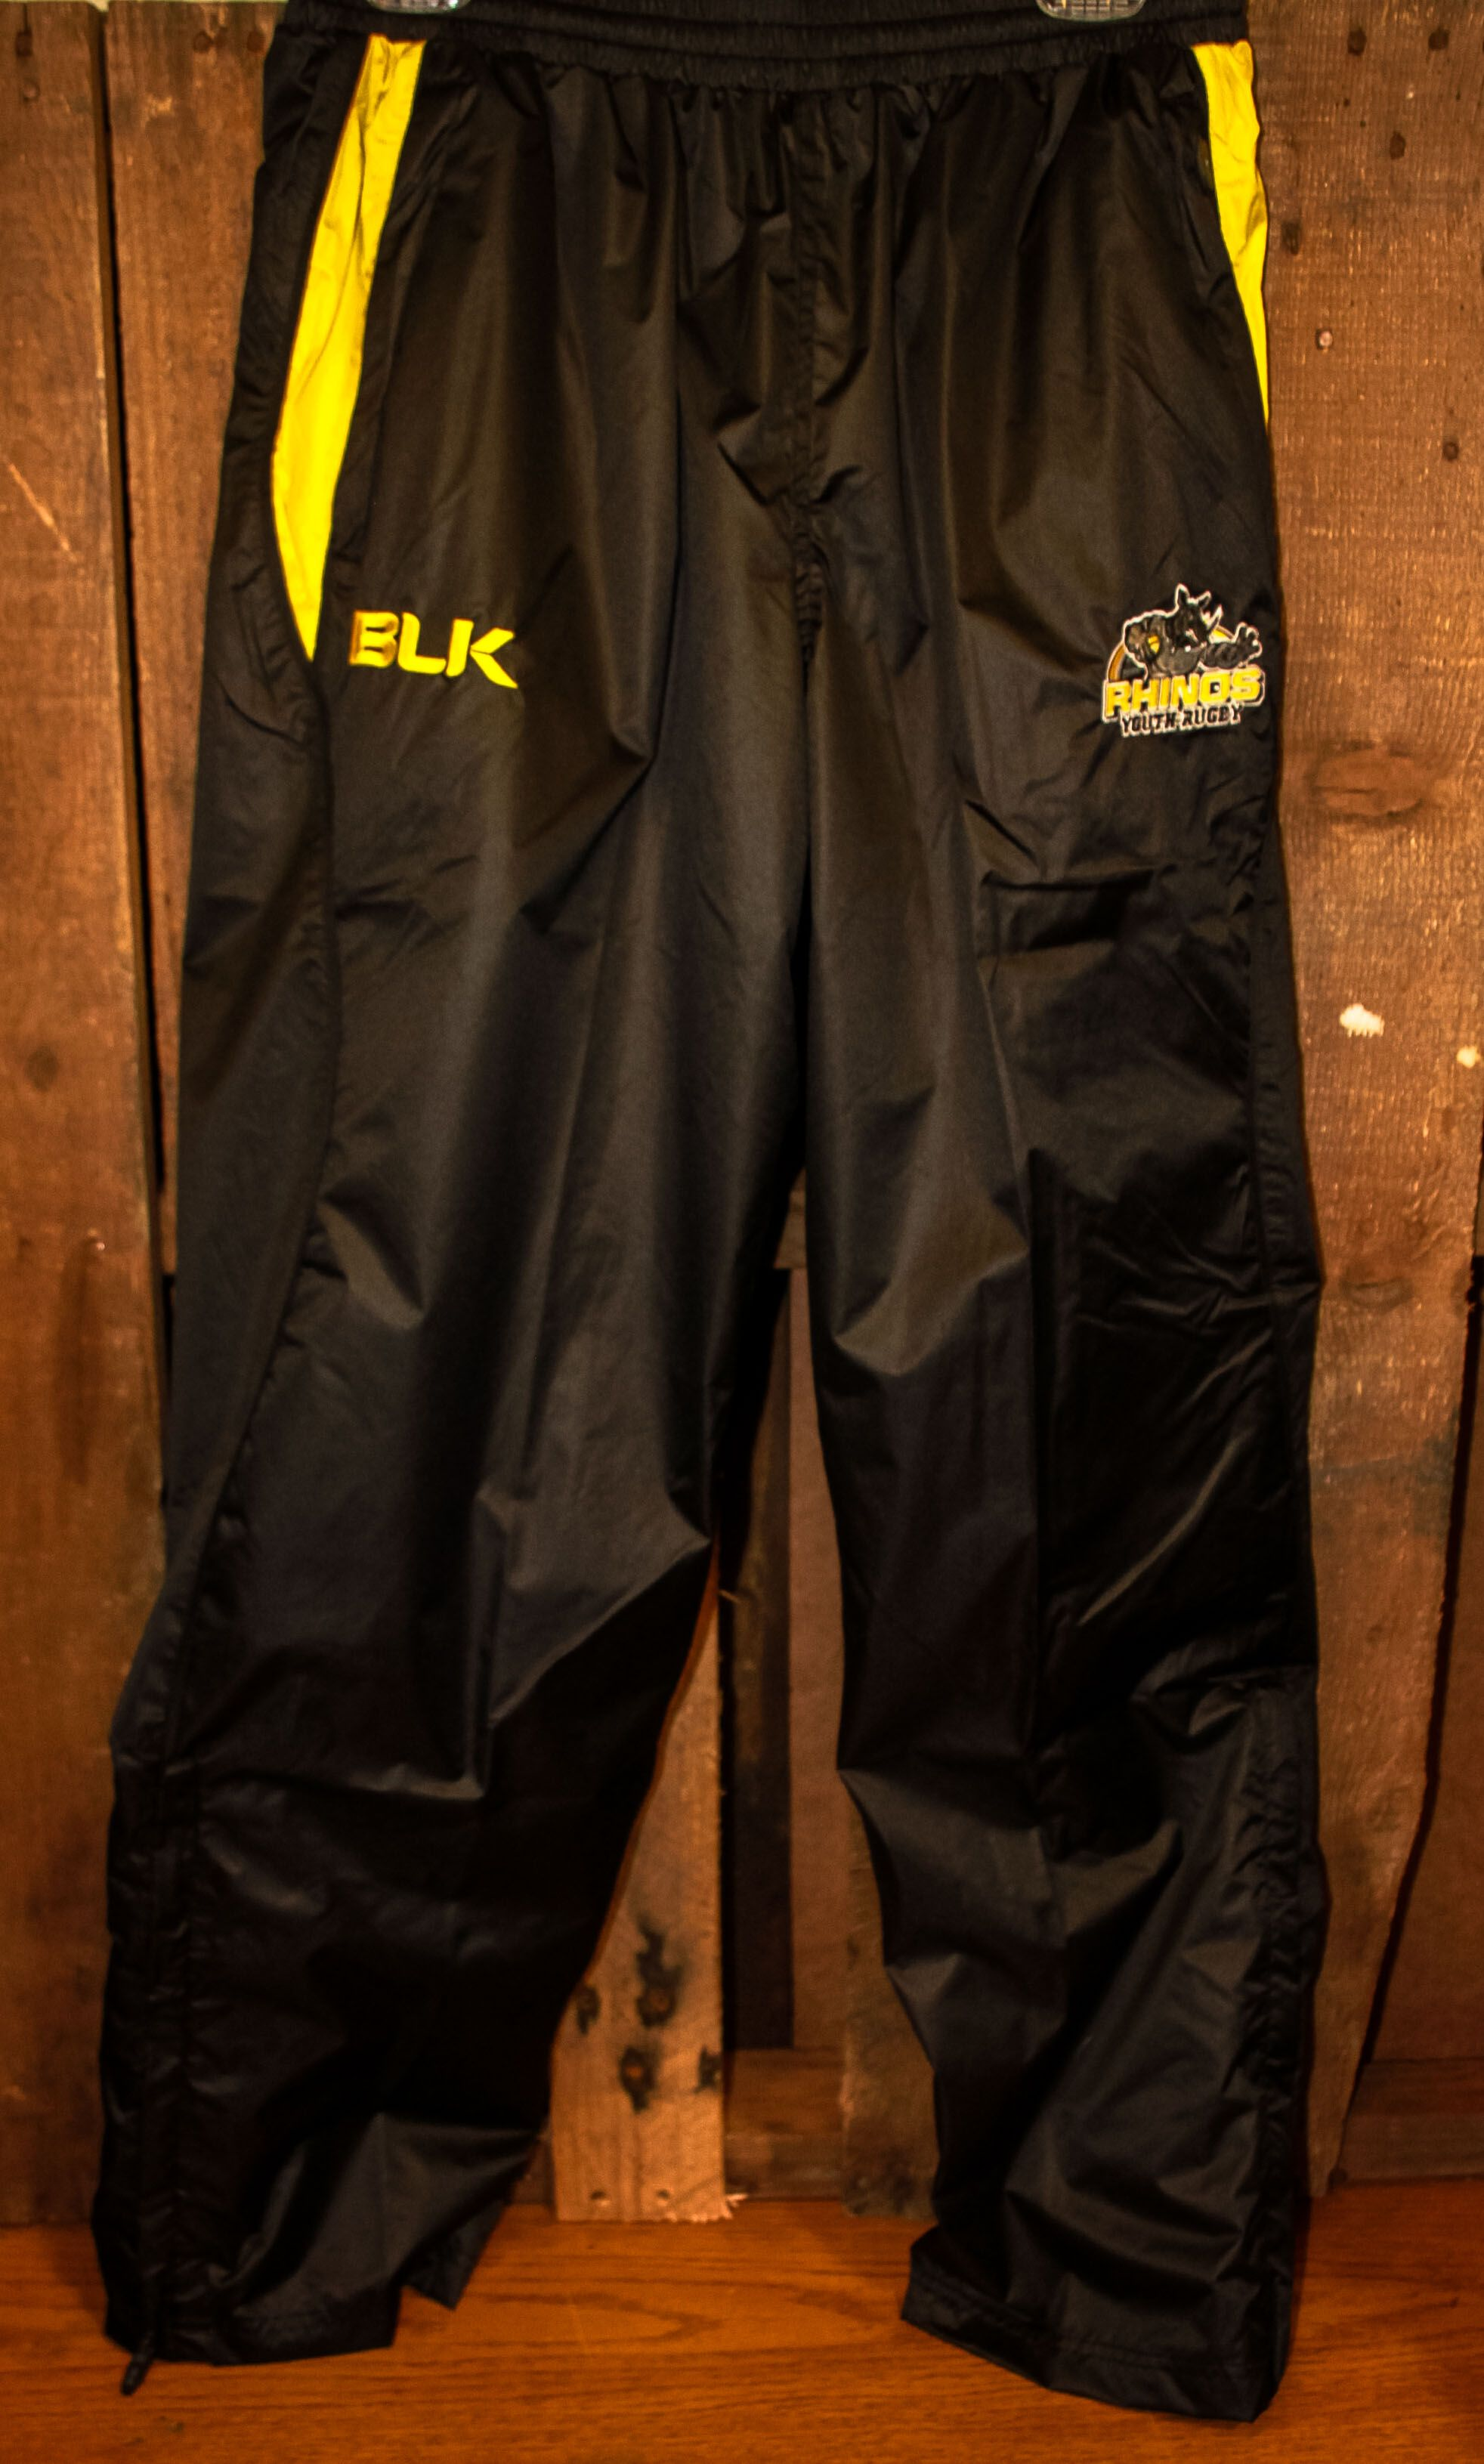 Rhino Rugby Club's new cut & sew BLK track suit  | Youth